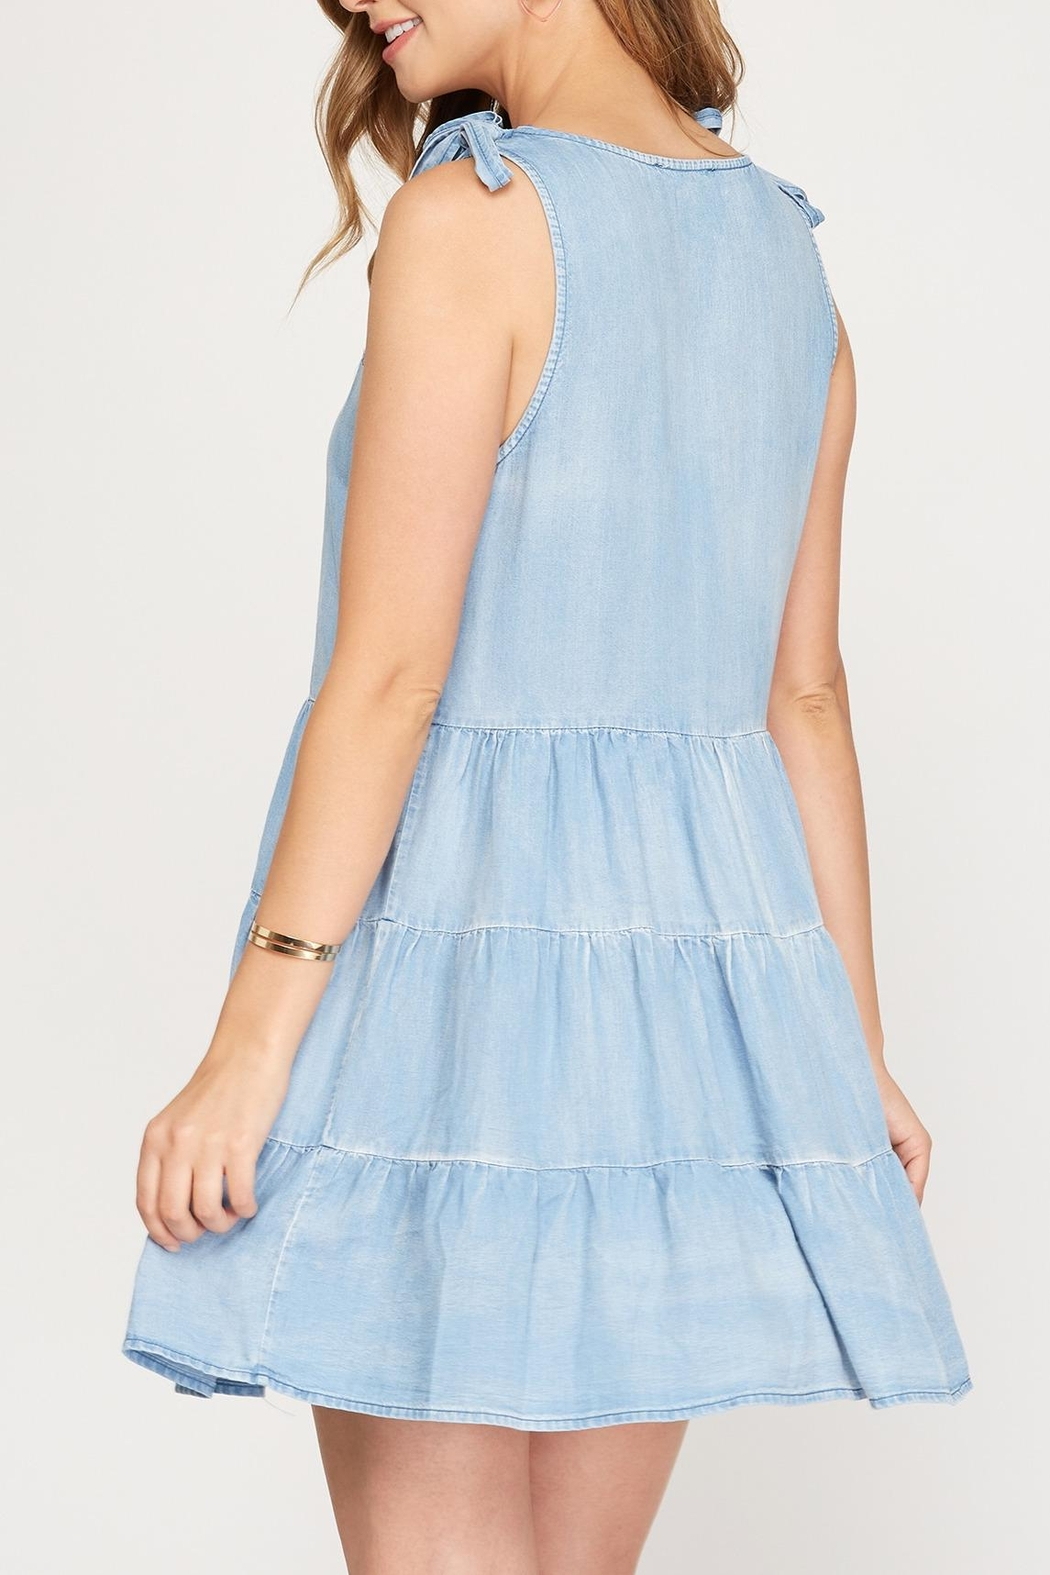 She + Sky Chambray Shoulder Tie Dress - Front Full Image